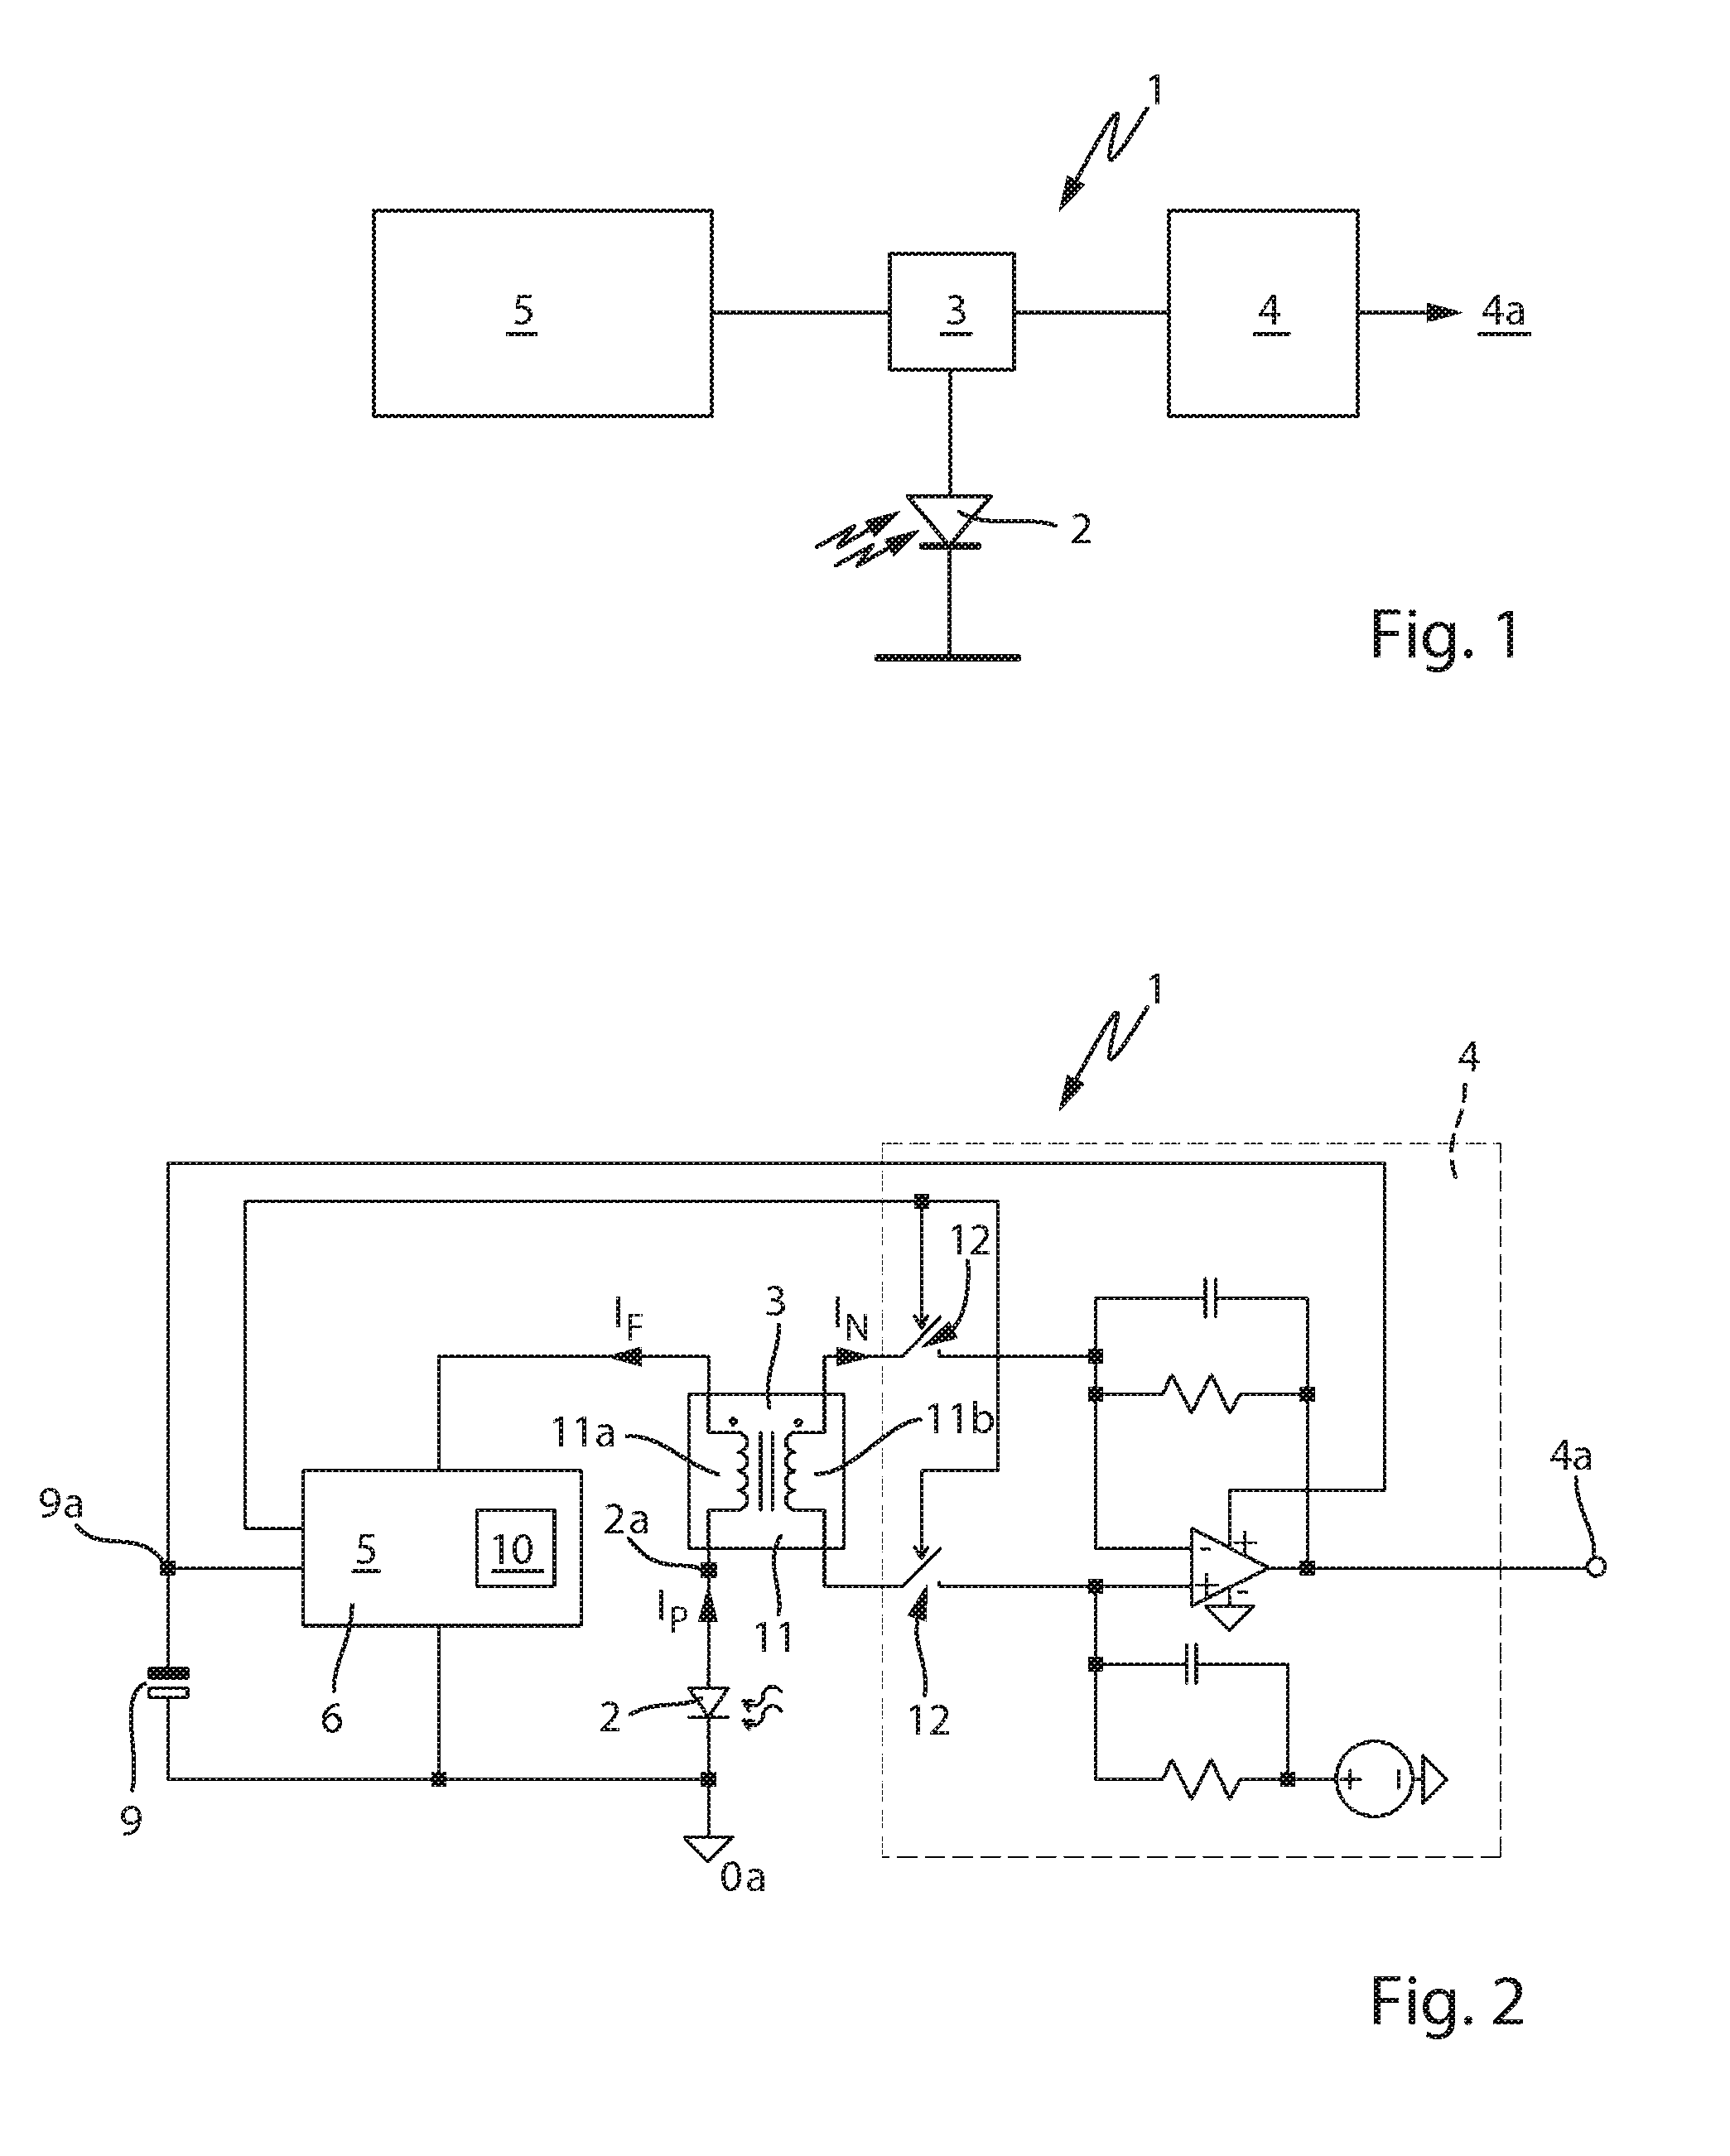 Patent Us20130028593 Optical Receiver For Receiving Light And Us6359517 Photodiode Transimpedance Circuit Google Patents Drawing